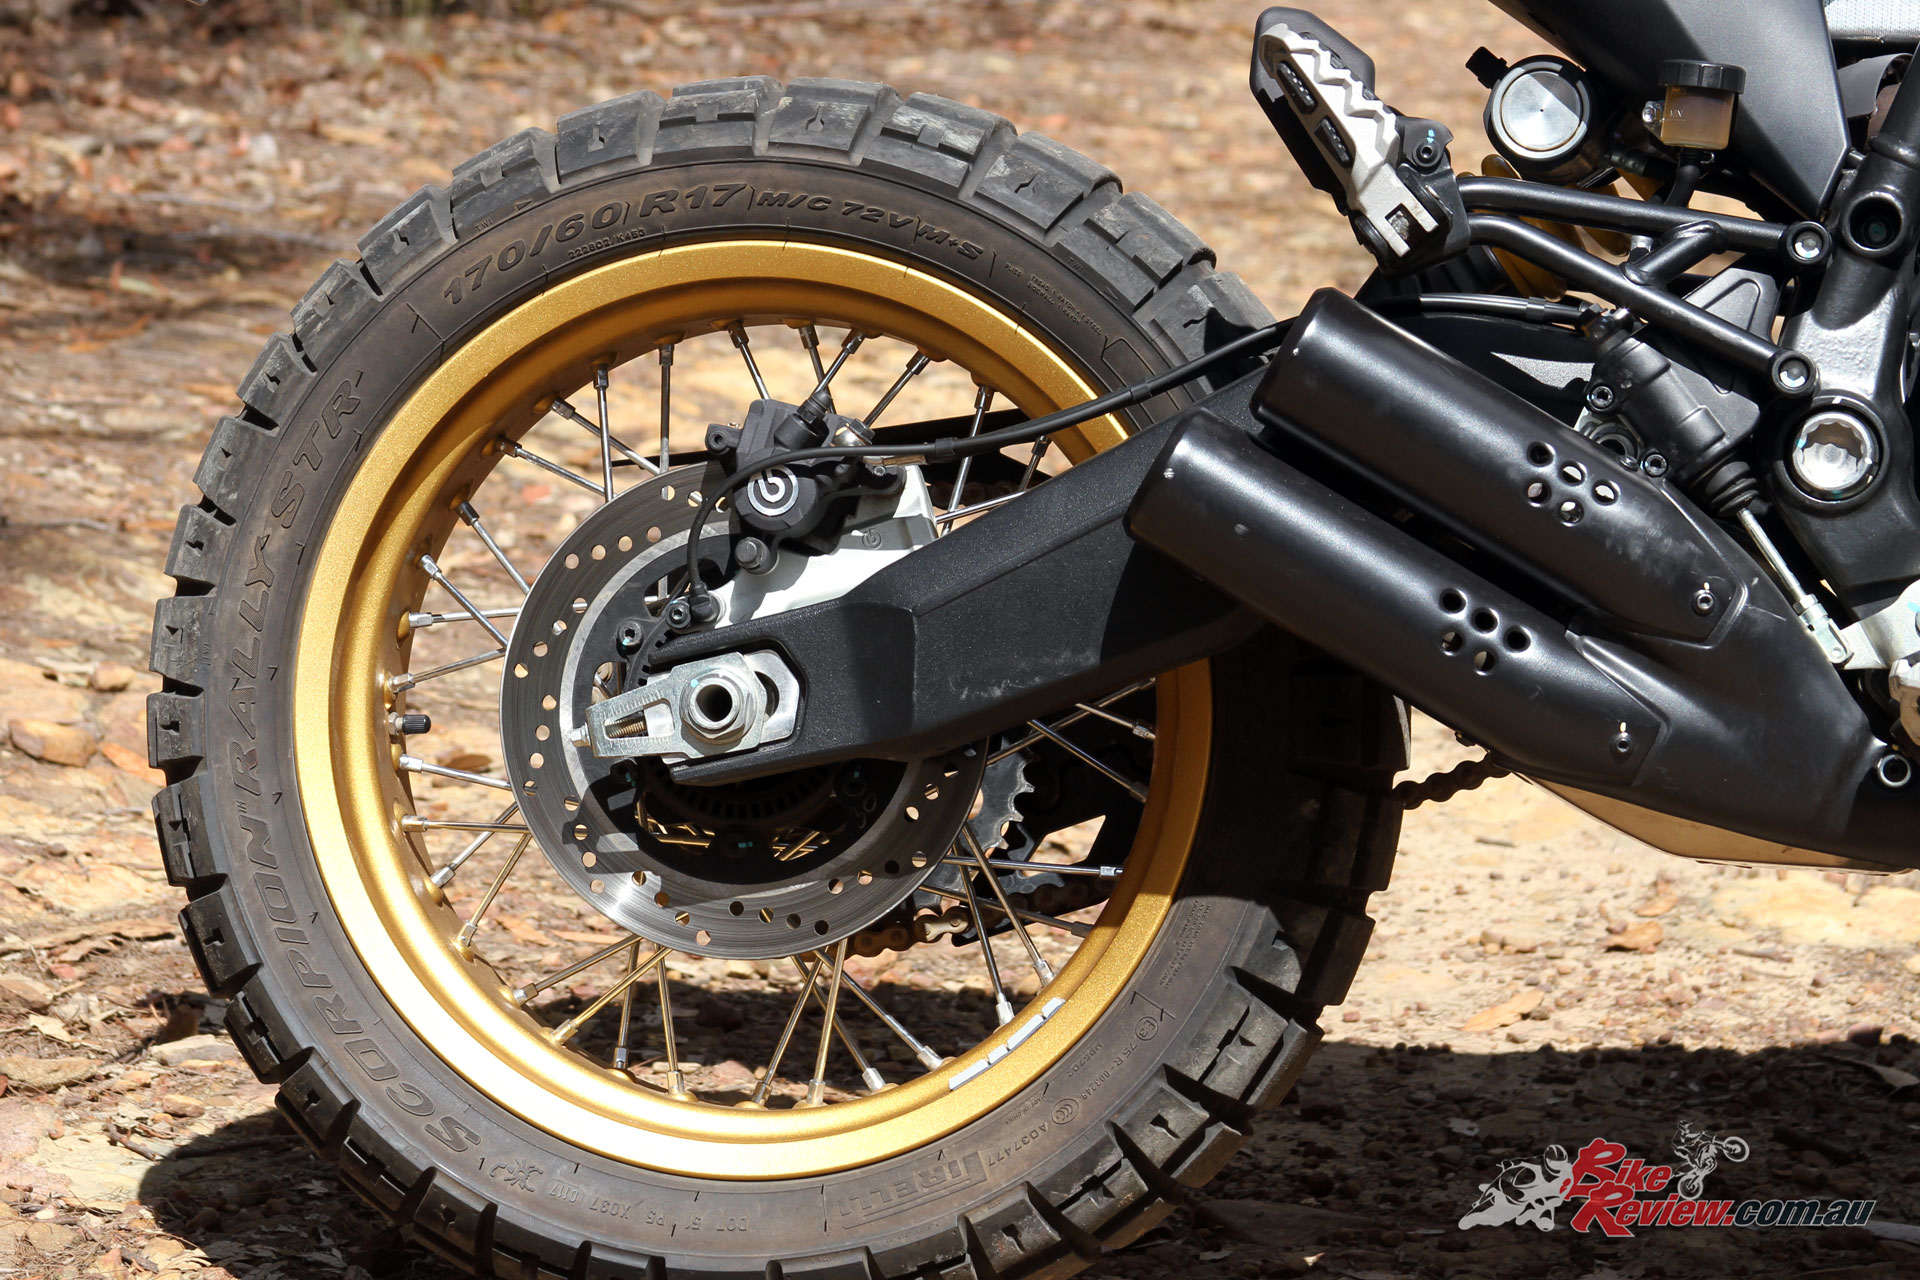 A longer swingarm gives great stability